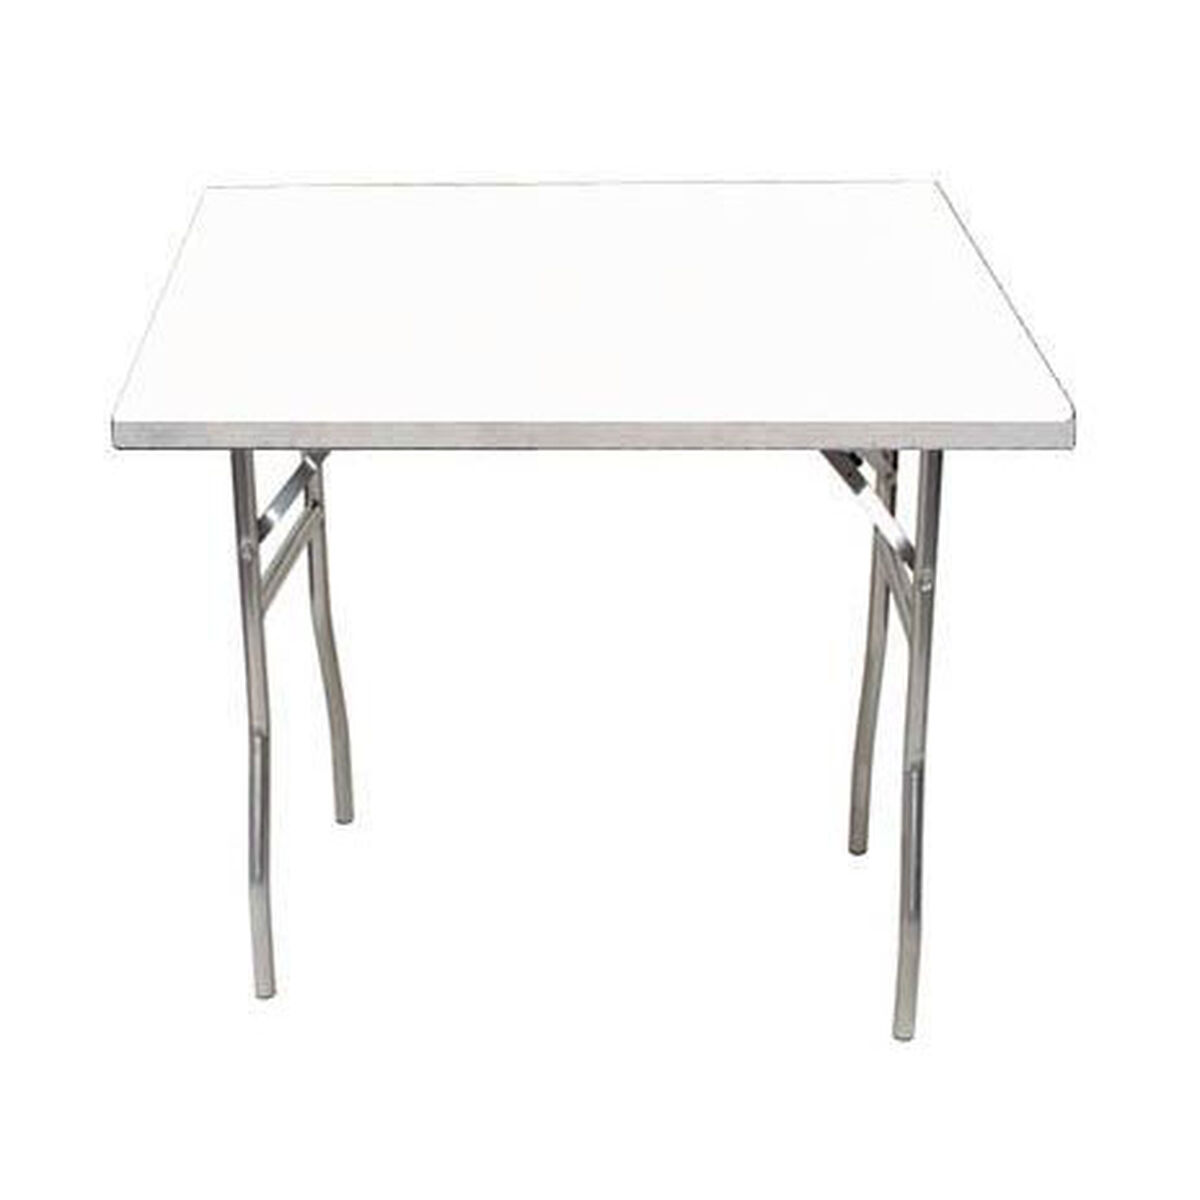 Square folding banquet table mf48sqfld cae bestchiavarichairs our standard series 48 square folding banquet table with aluminum edge and mayfoam top watchthetrailerfo